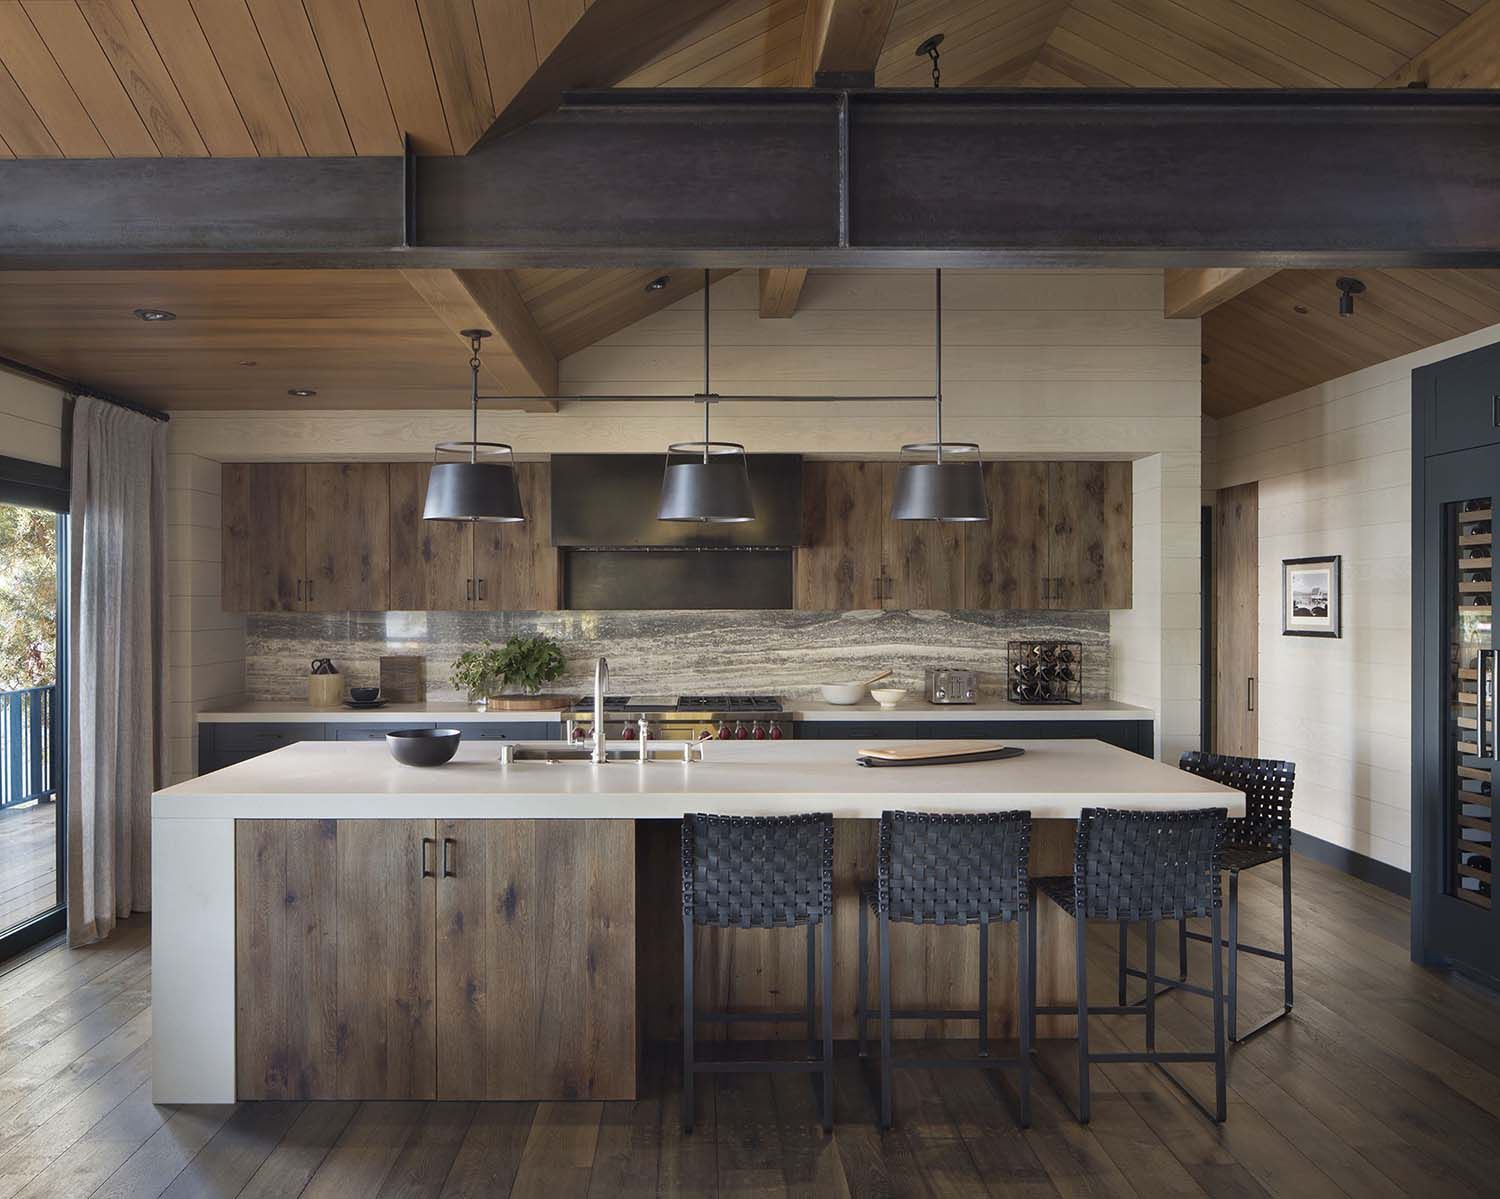 Rustic lake house retreat inspired by gorgeous Lake Tahoe ...